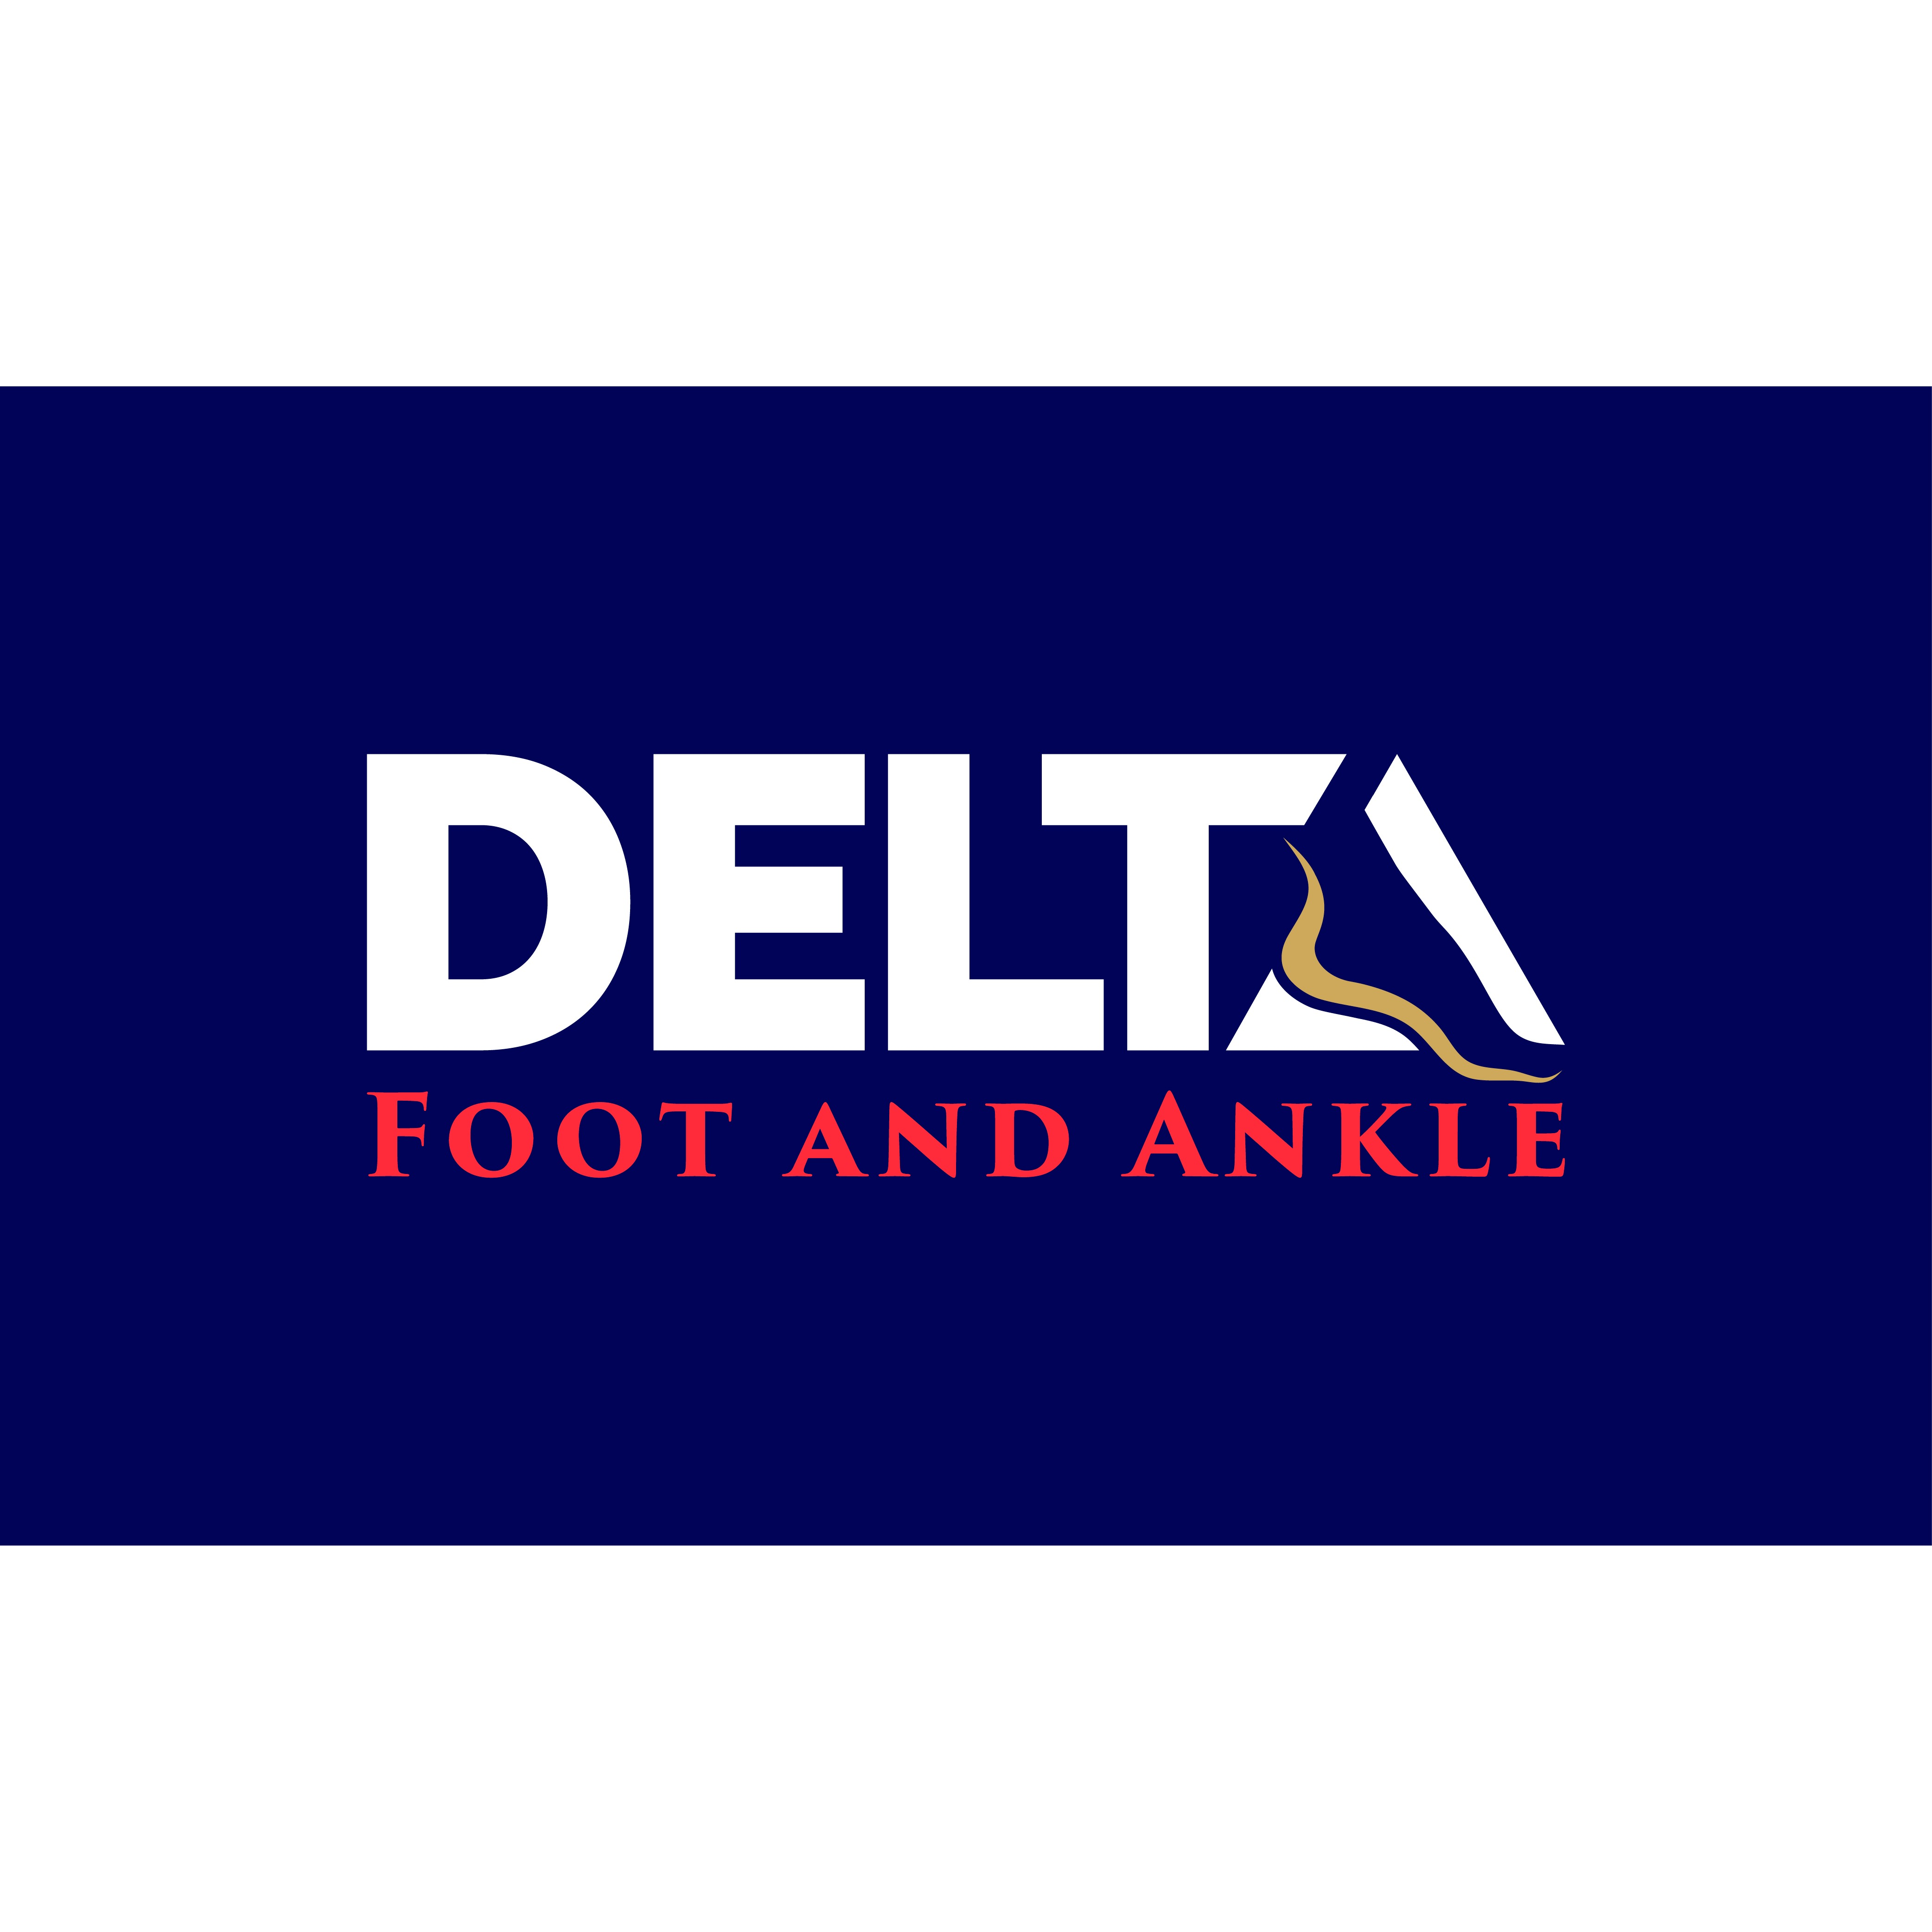 Delta Foot and Ankle